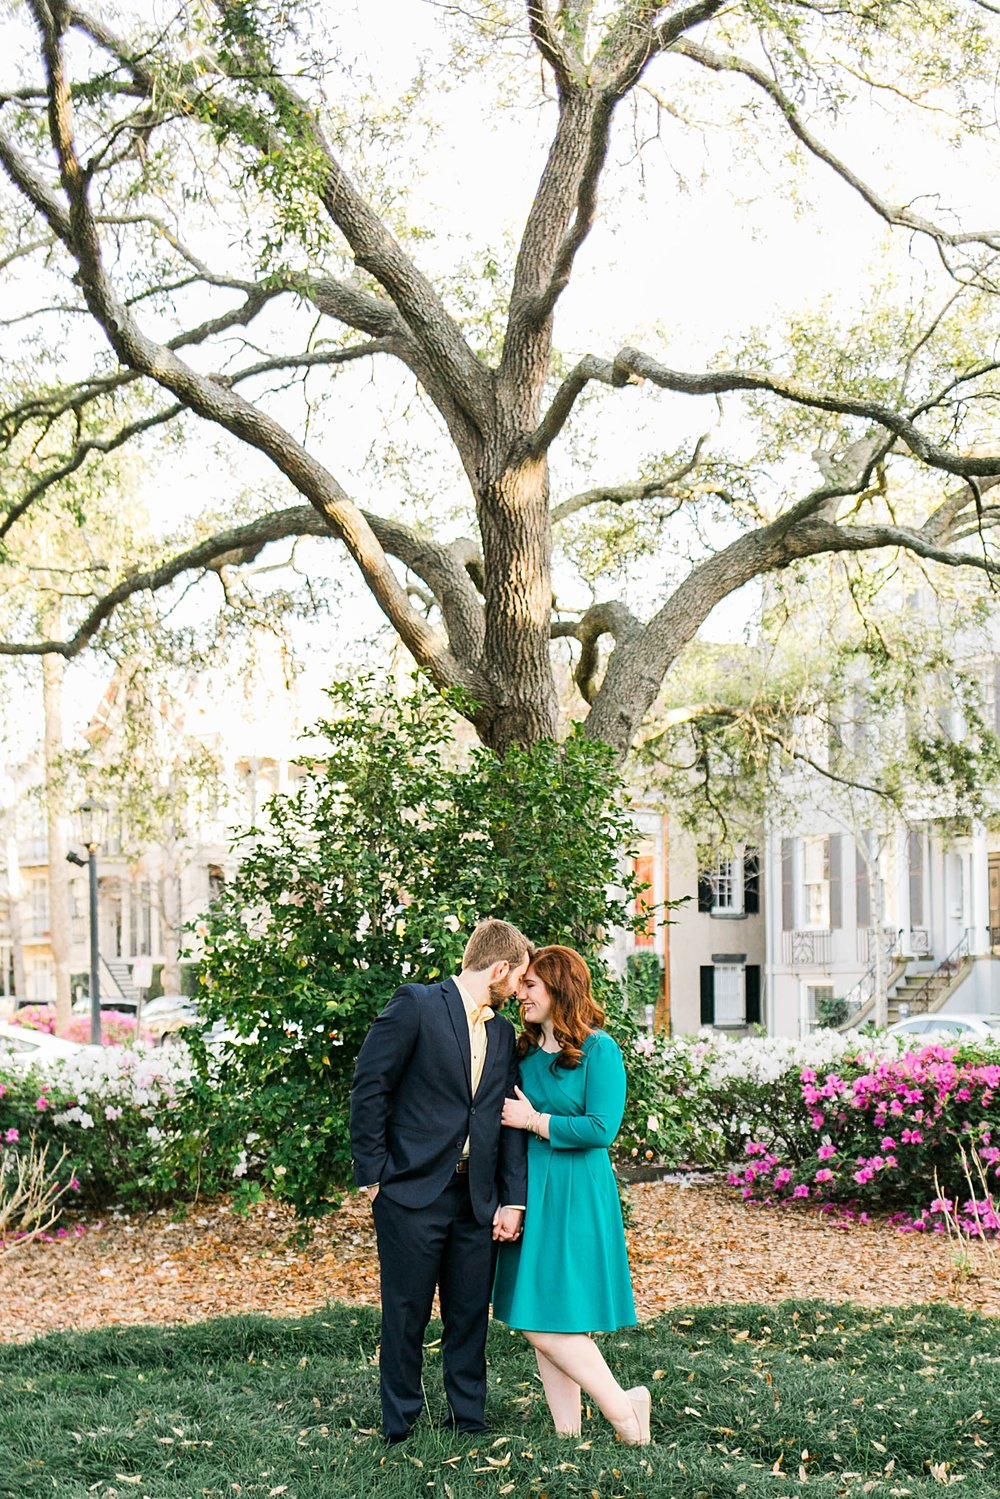 Forsyth-Park-Engagement-Session-JB-Marie-Photography